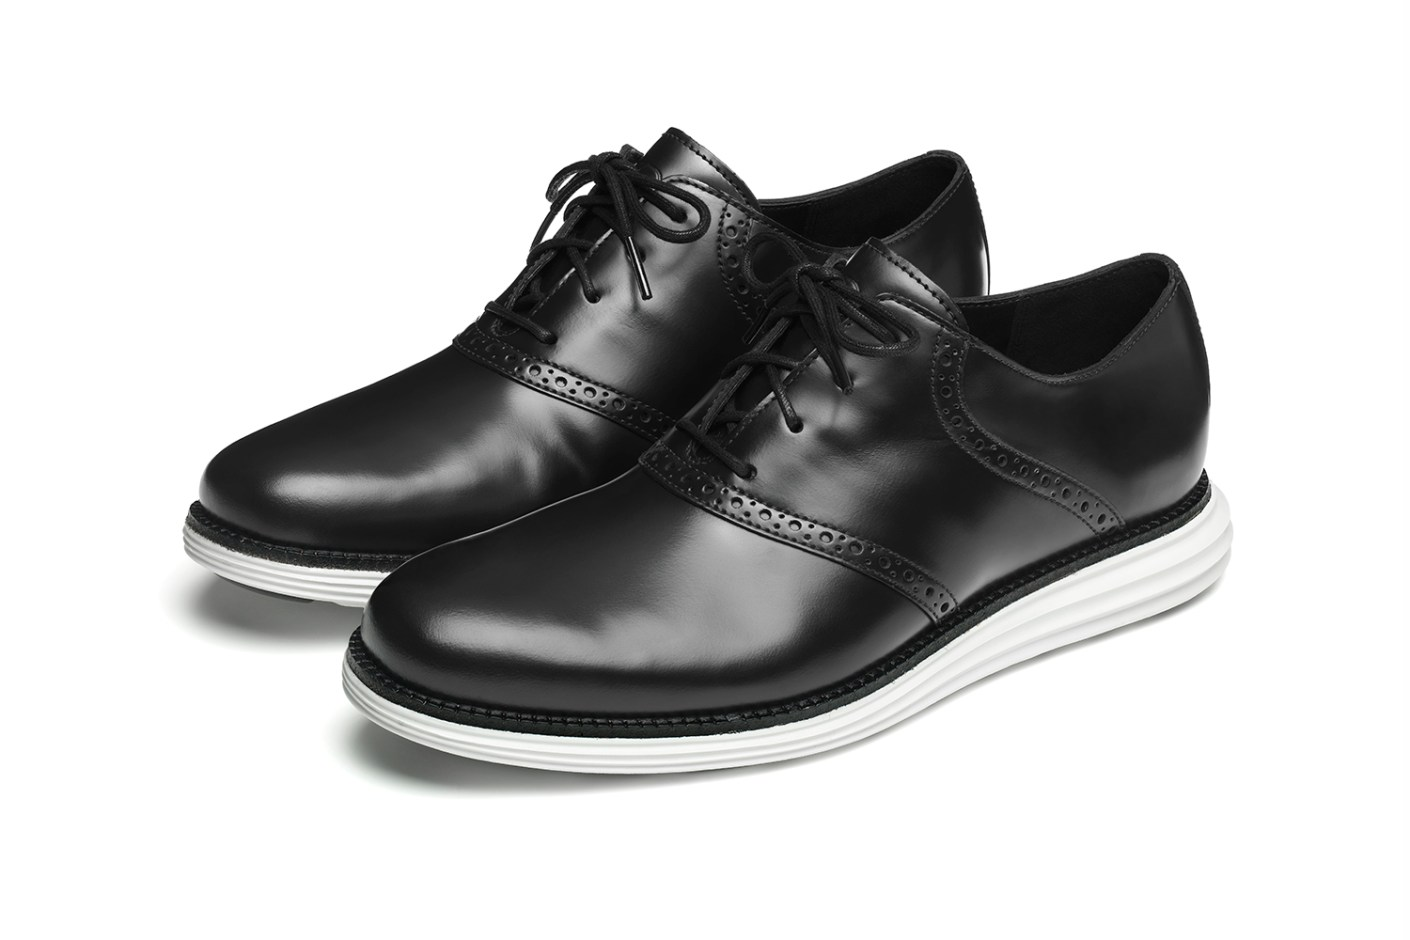 Image of fragment design x Cole Haan 2012 Holiday LunarGrand Collection